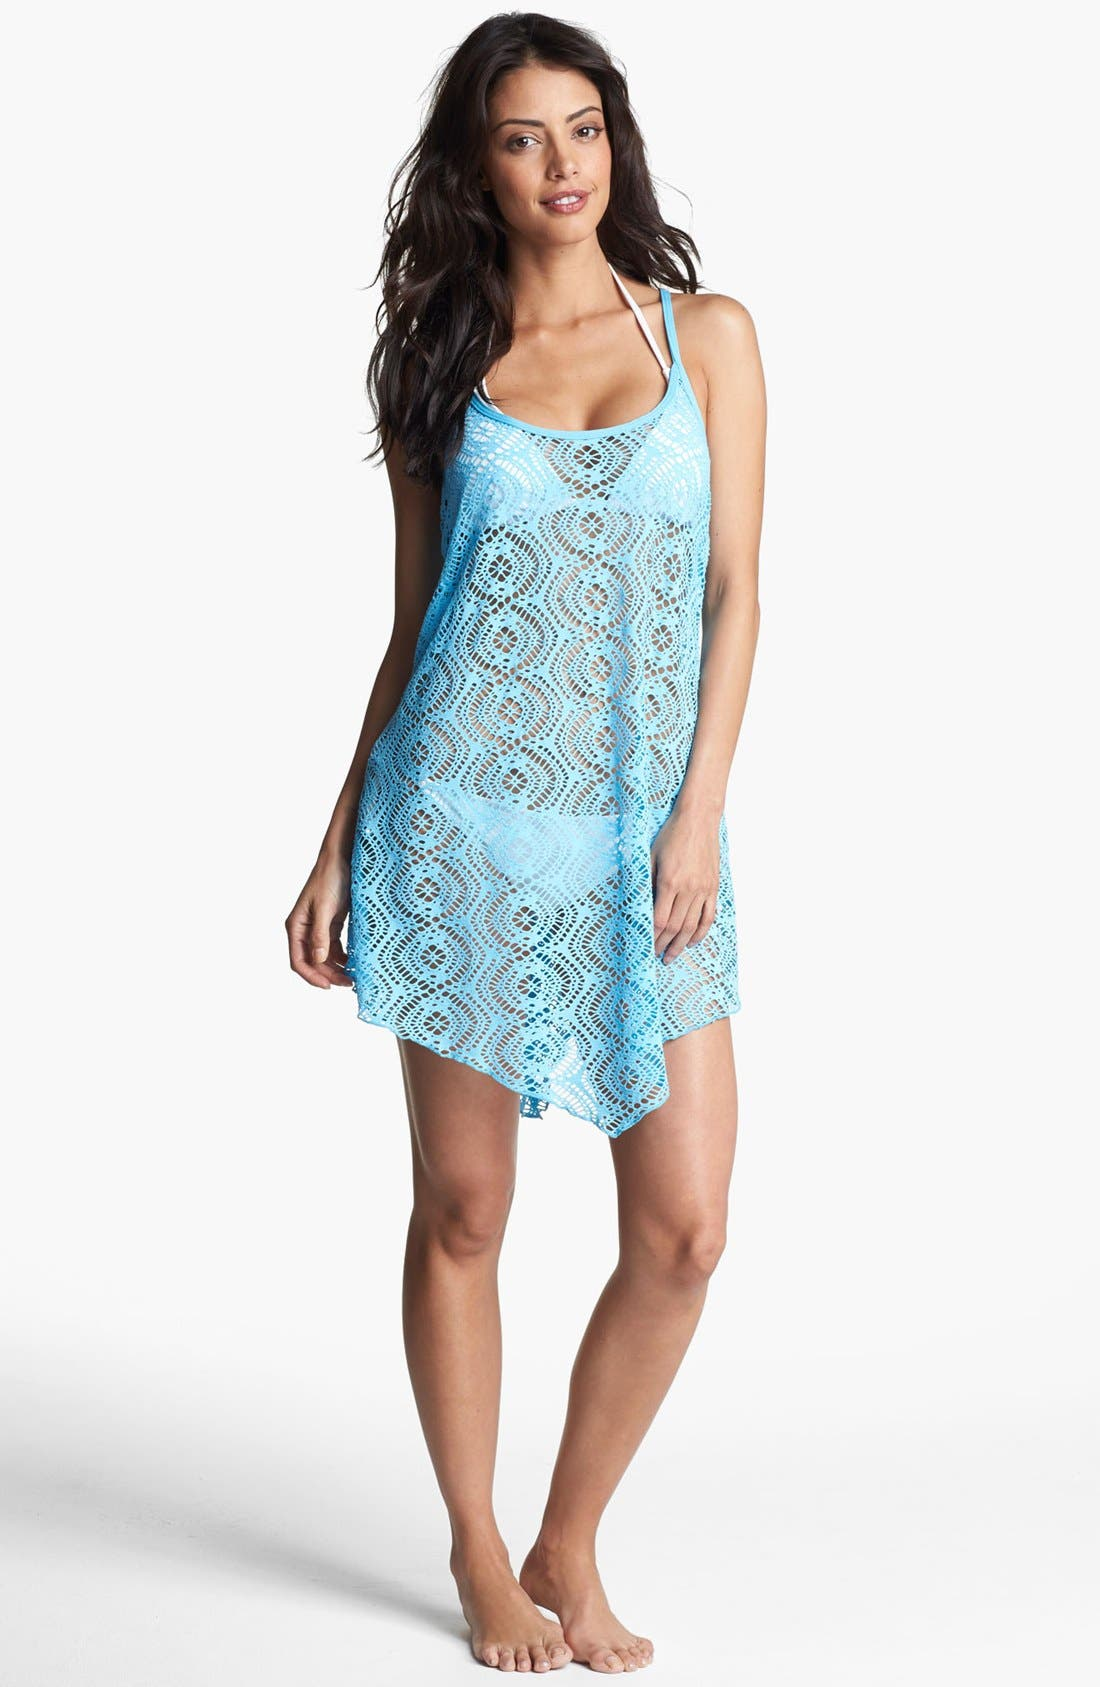 Main Image - Becca Strappy Crochet Cover-Up Dress